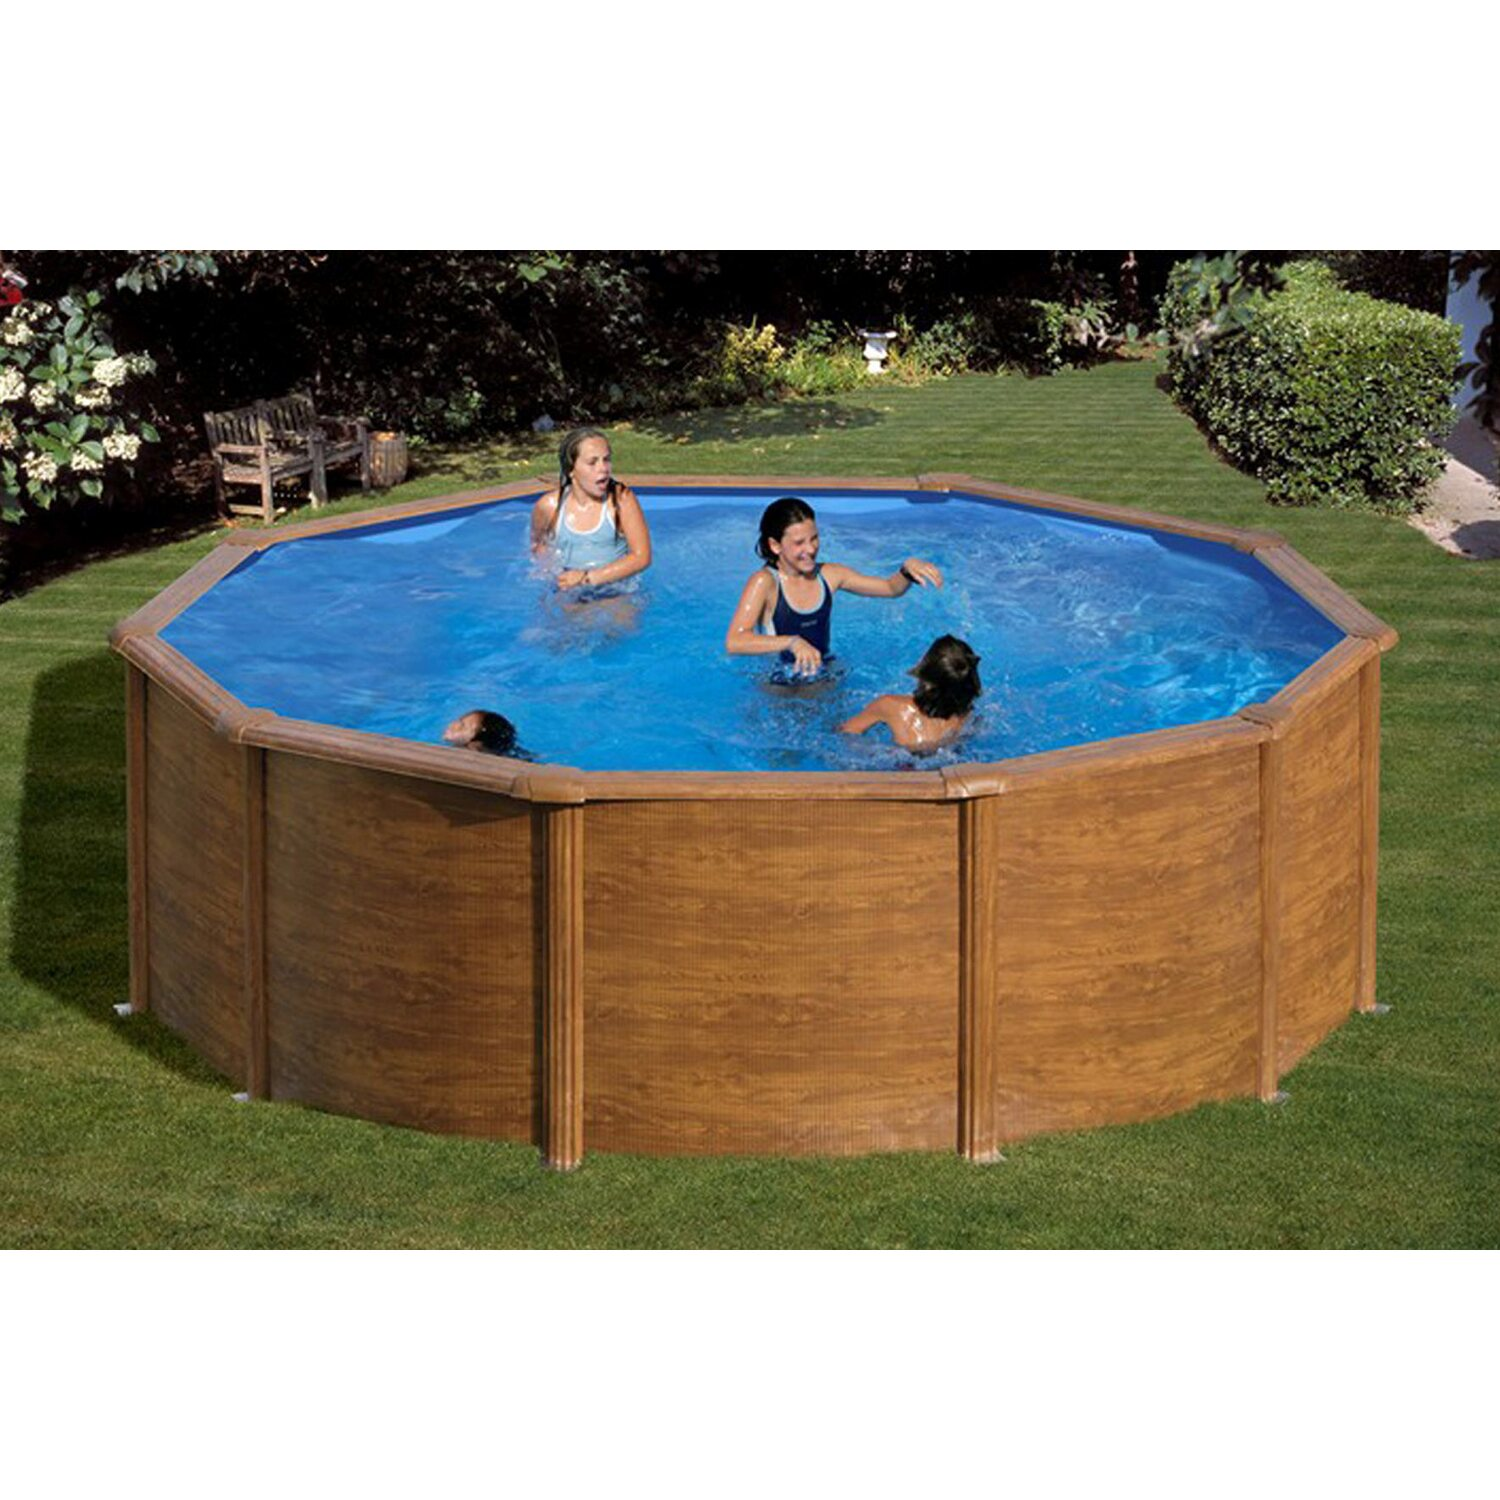 summer fun stahlwand pool set holz dekor rhodos aufstellbecken 460 cm x 120 cm kaufen bei obi. Black Bedroom Furniture Sets. Home Design Ideas